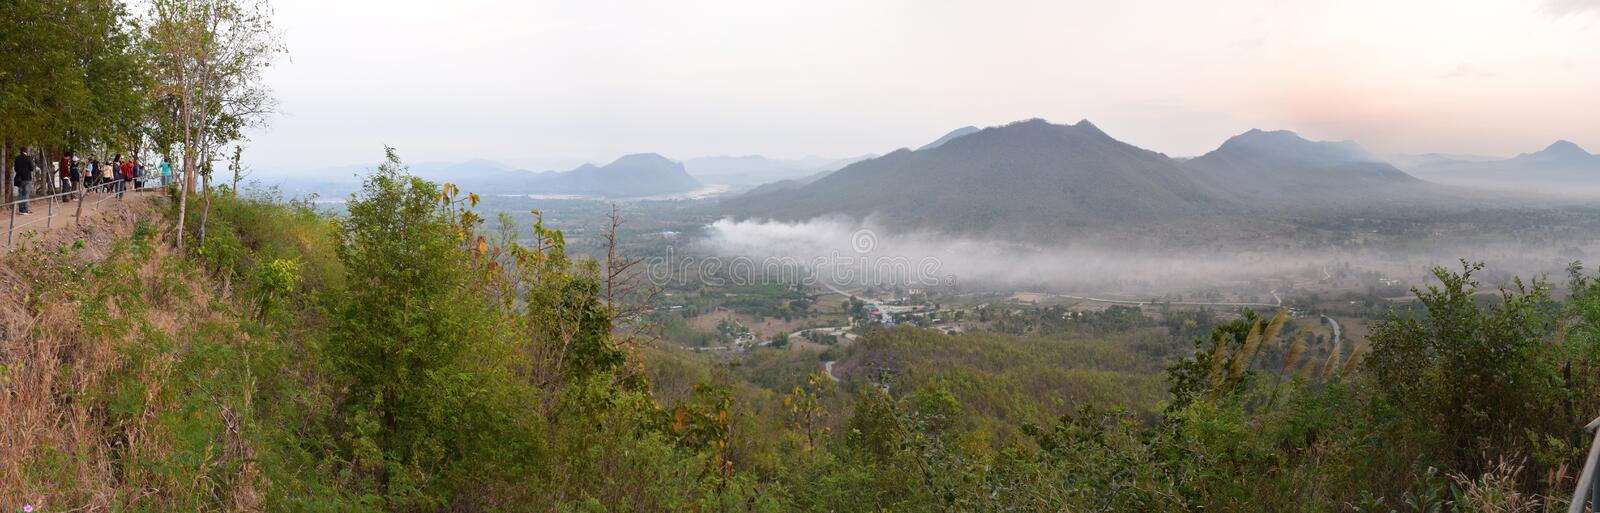 Sea of mist at phu tok , Chiang Kan district, Loei province,Thailand. Photo taken on February 27th, 2016 royalty free stock images